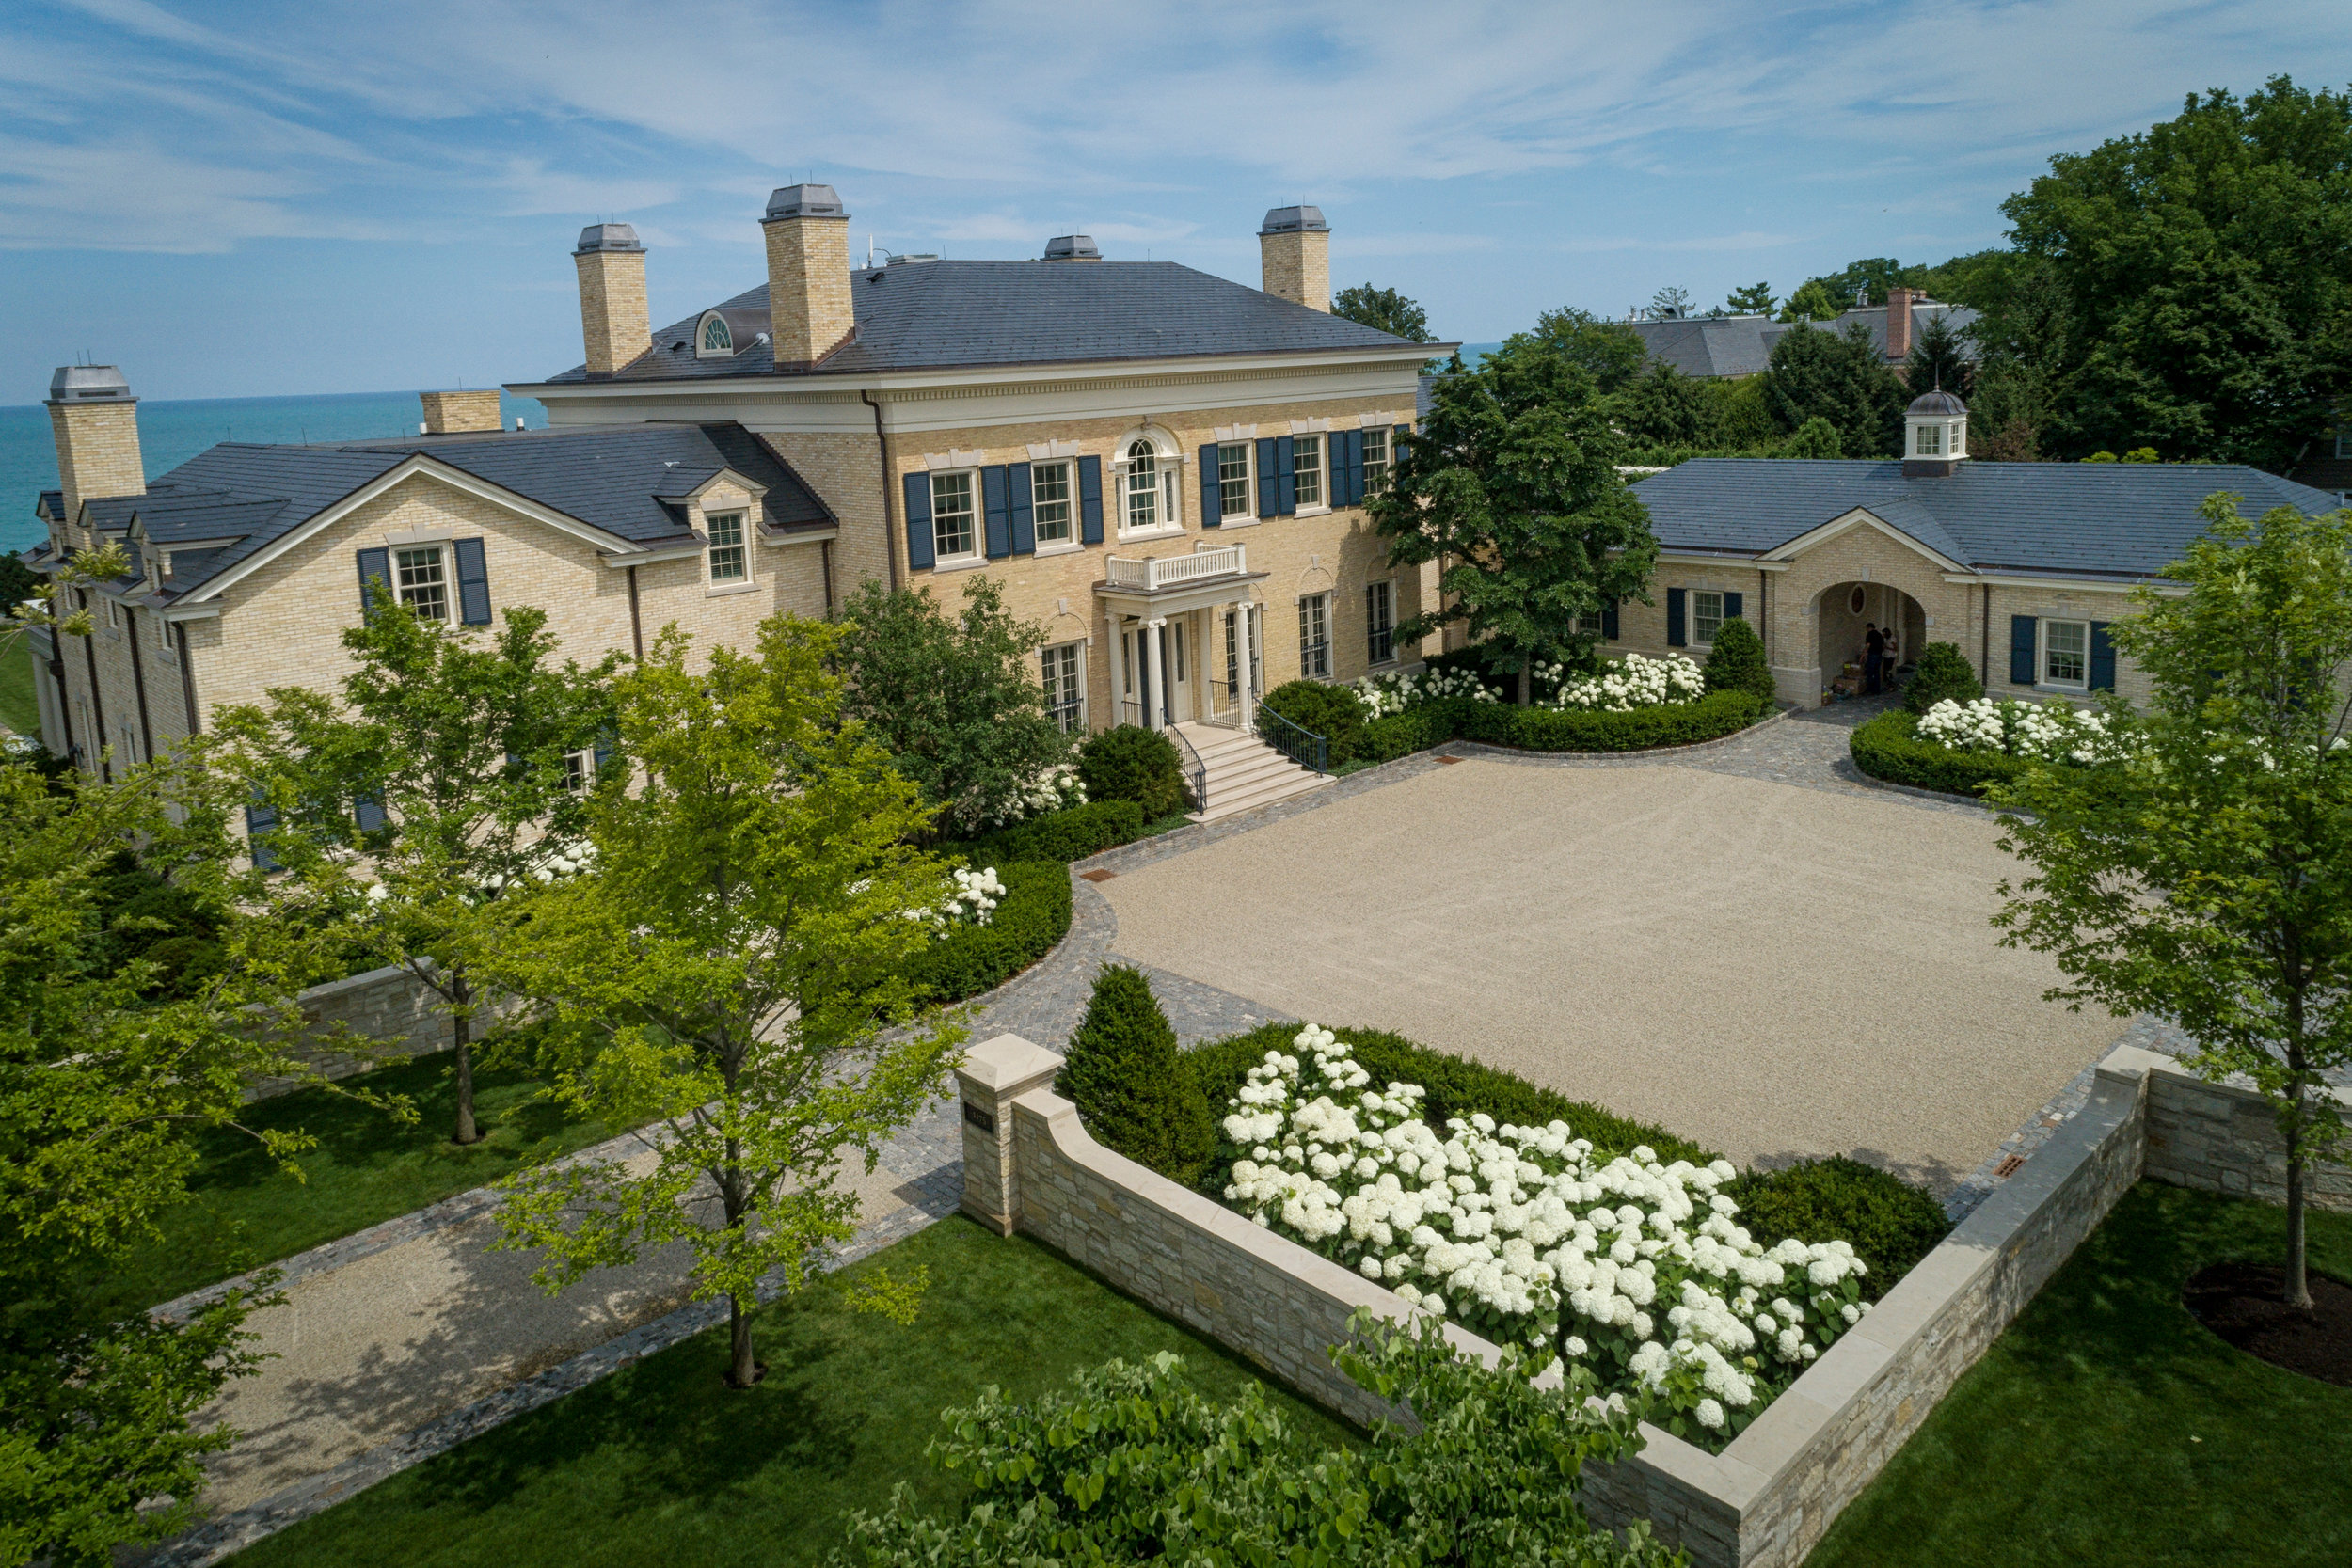 Landscape Architecture - Winnetka, Illinois